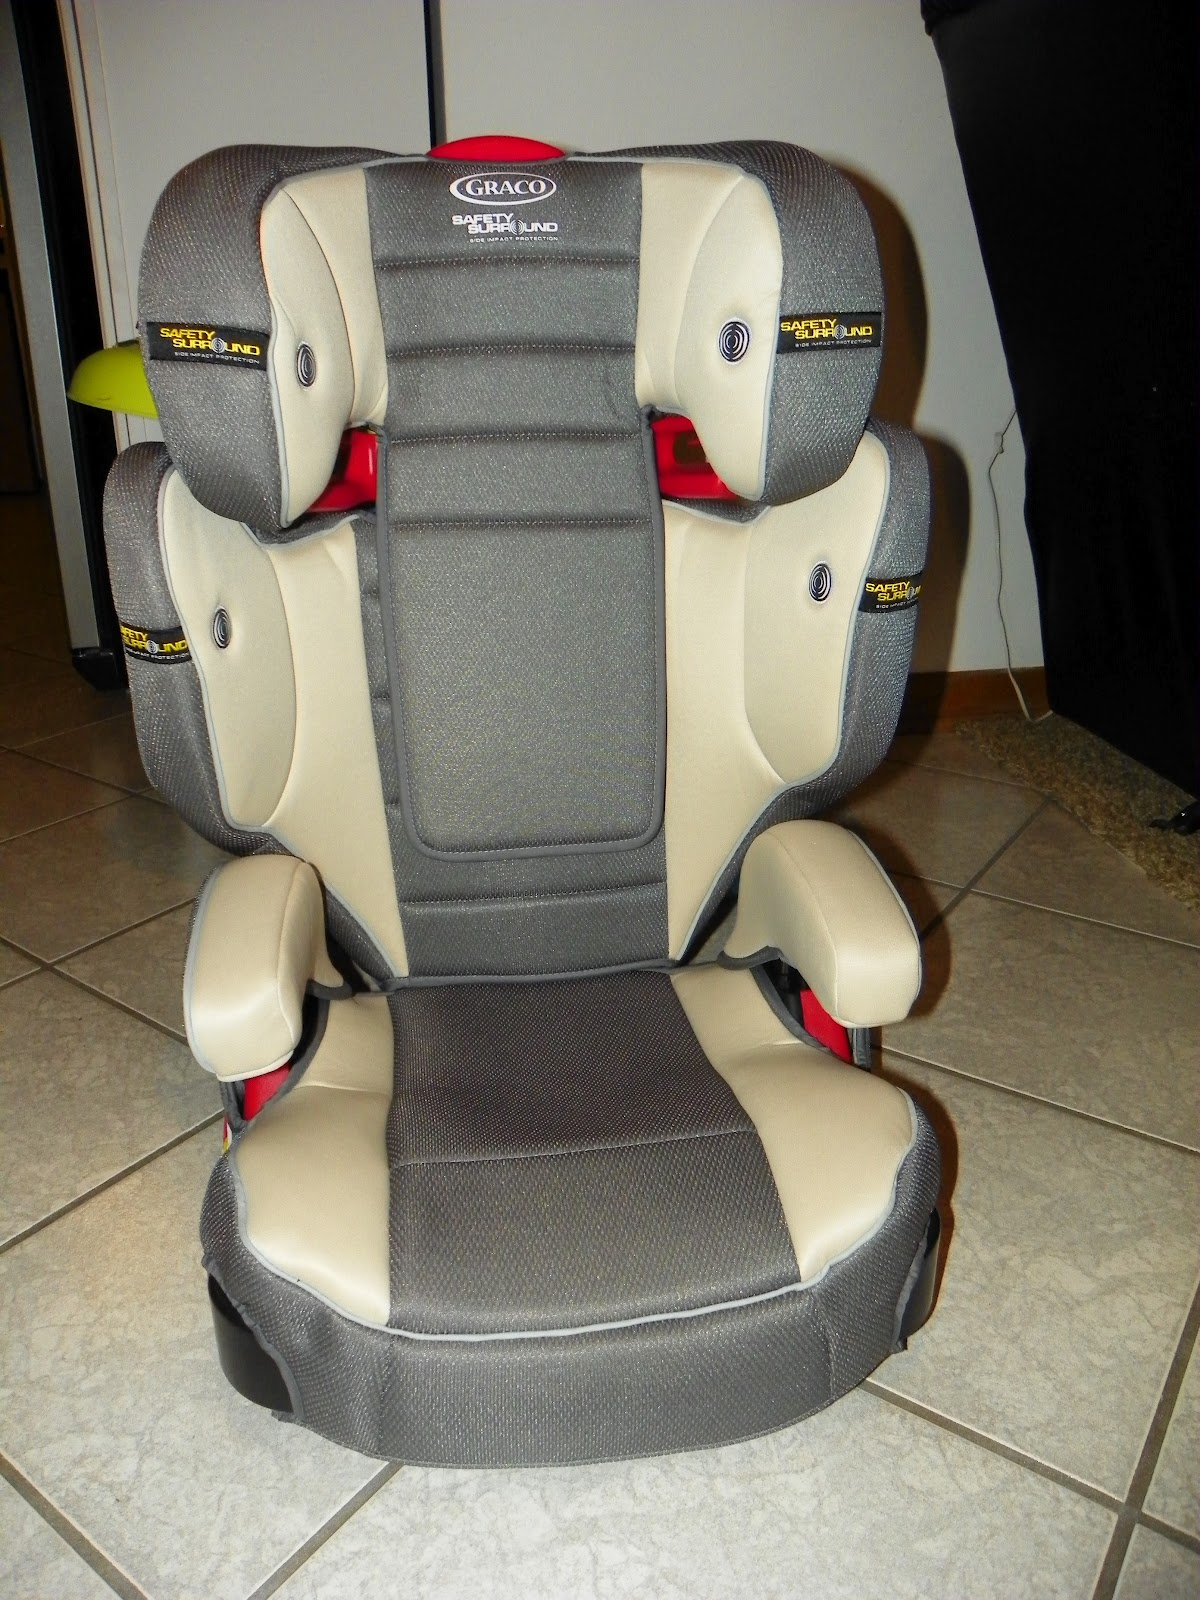 You Now Have An Amazing And Safe TurboBooster Car Seat With Safety Surround